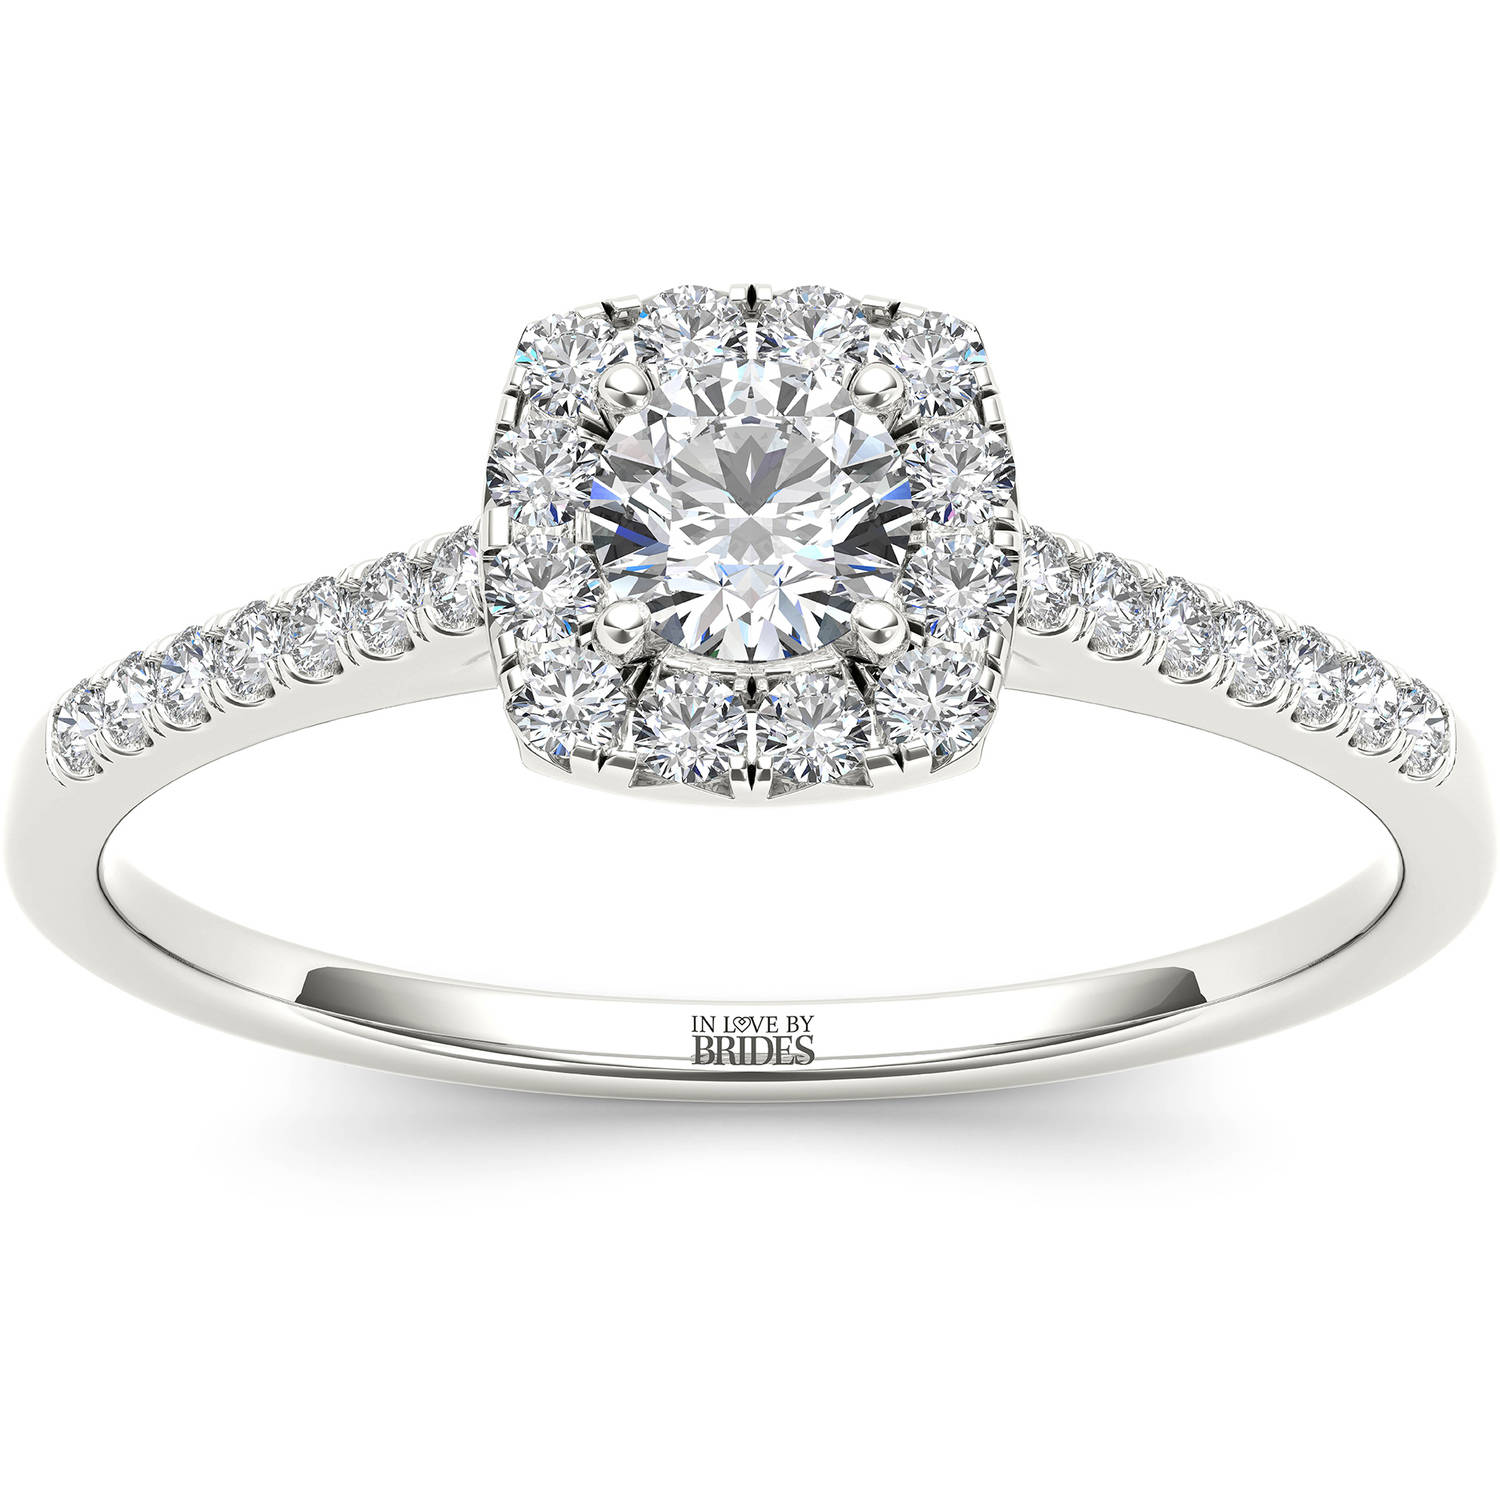 IN LOVE BY BRIDES 3/8 Carat T.W. Certified Diamond Cushion Halo 14kt White Gold Engagement Ring